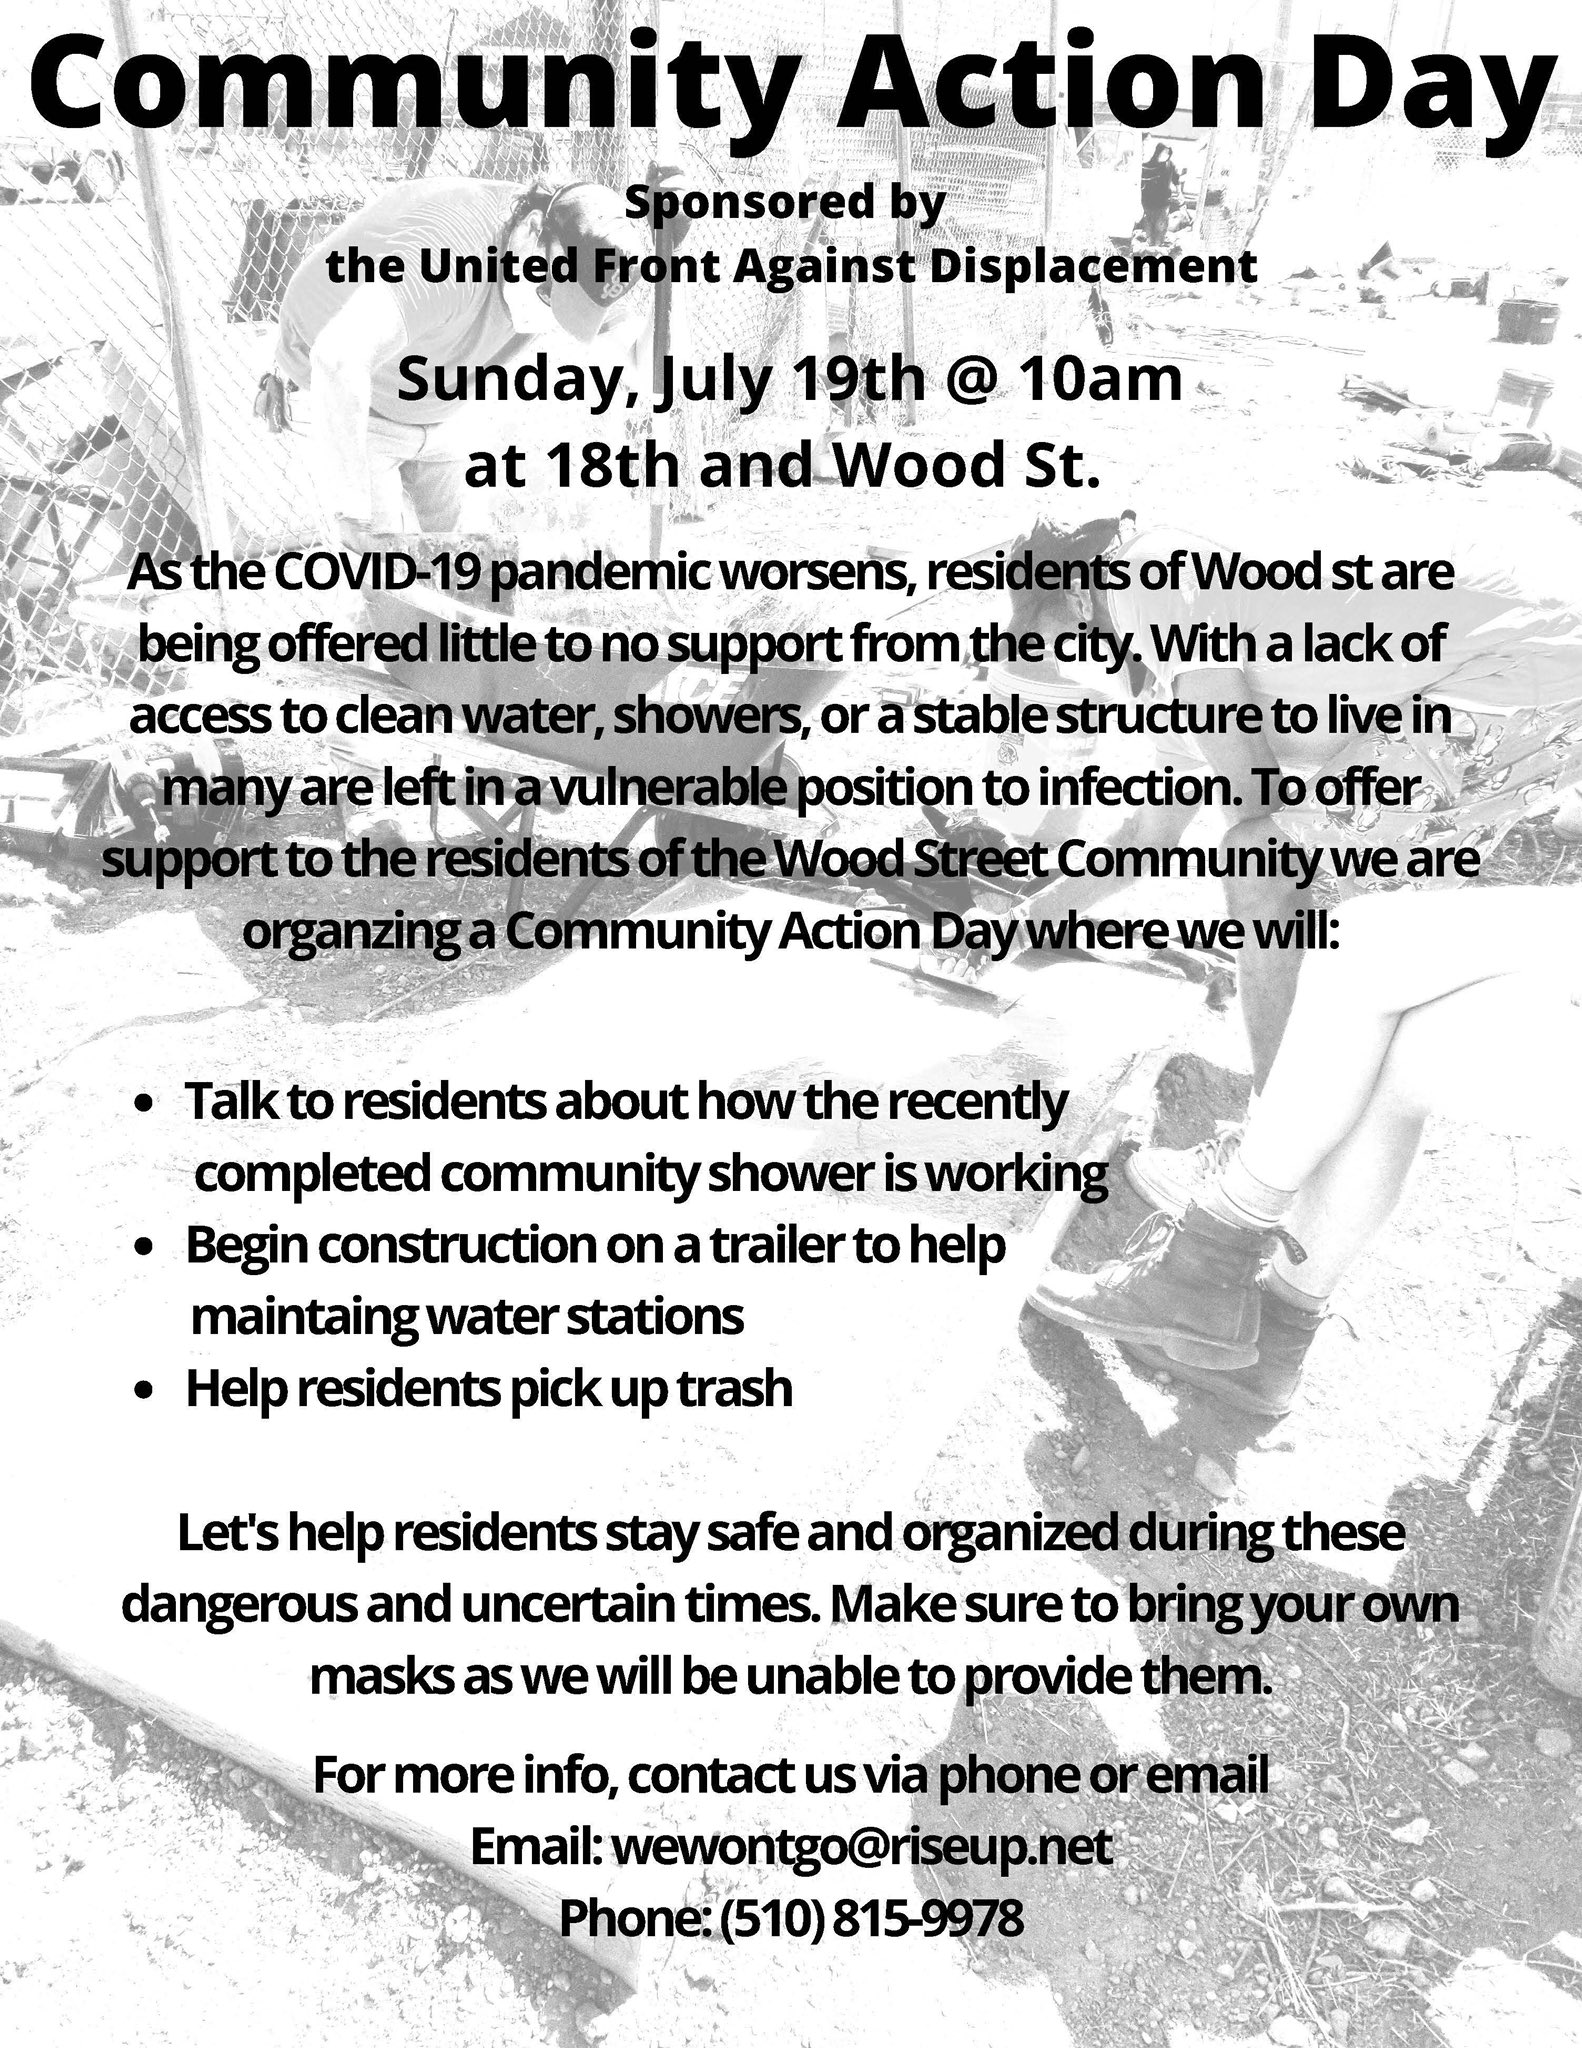 Community Action Day - Wood St. Homeless Community